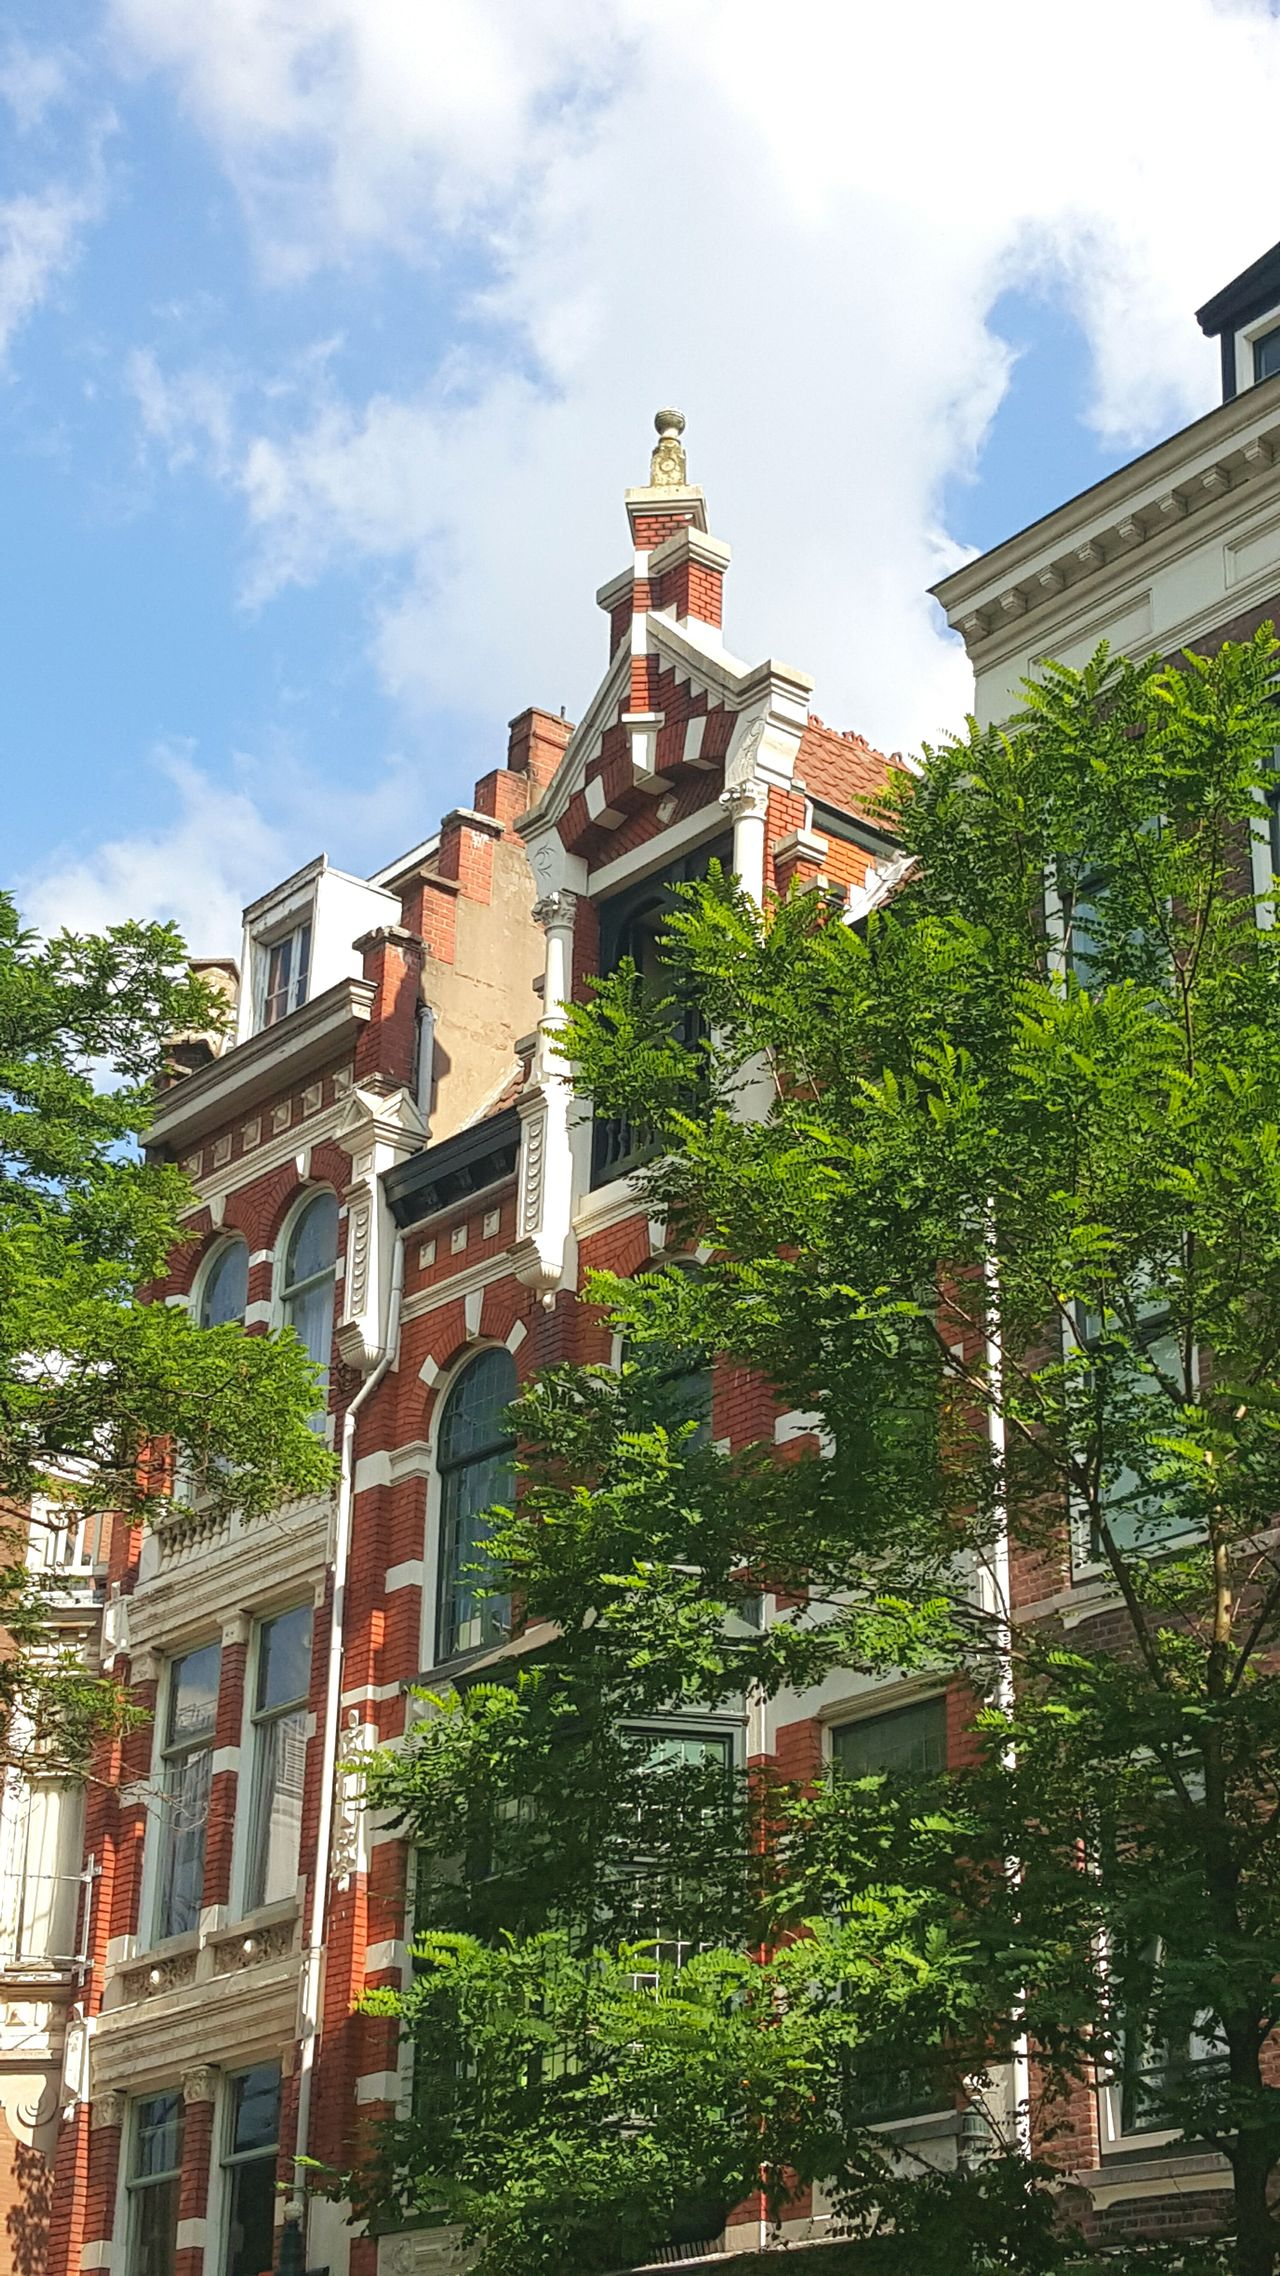 Urbanphotography Sightseeing Urban Taking Photos Sunny Day Architecture Dutch Cities Dutch Architecture Green Trees Dutch House